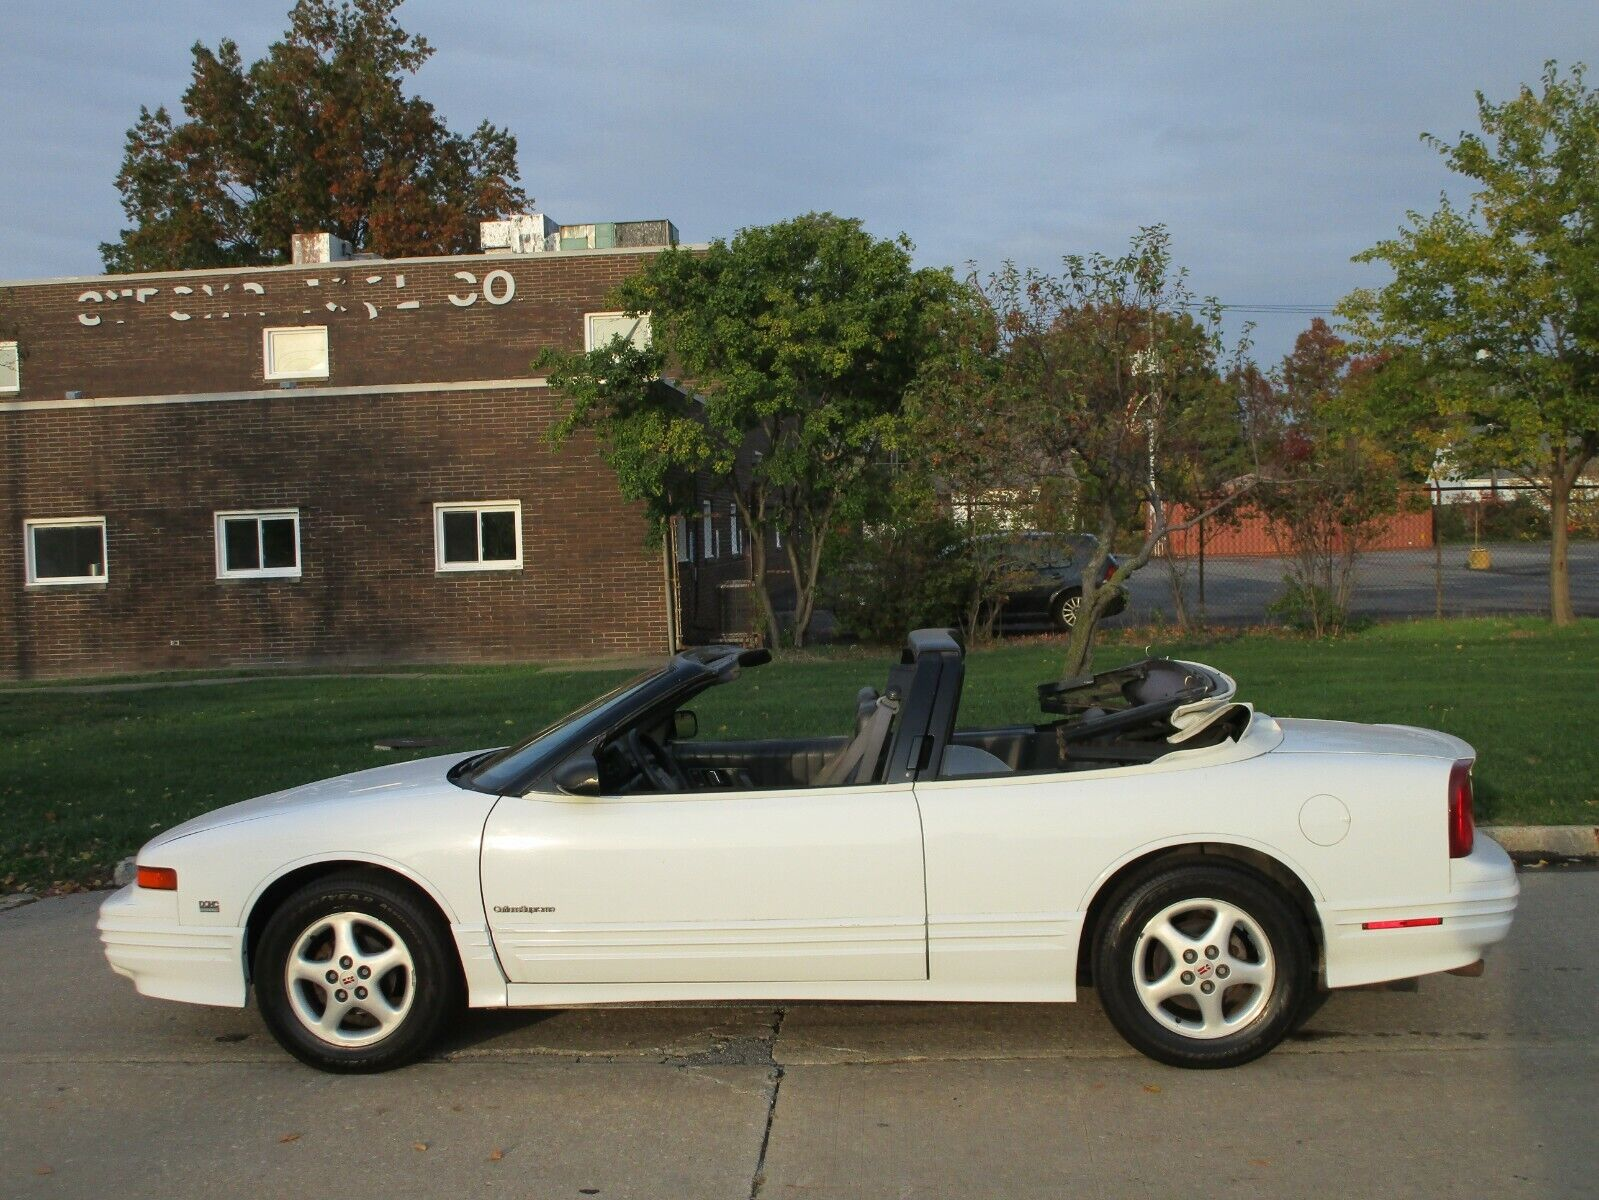 1993 Oldsmobile Cutlass Convertible - Auto - Air - Eye Catcher - Clean In & Out